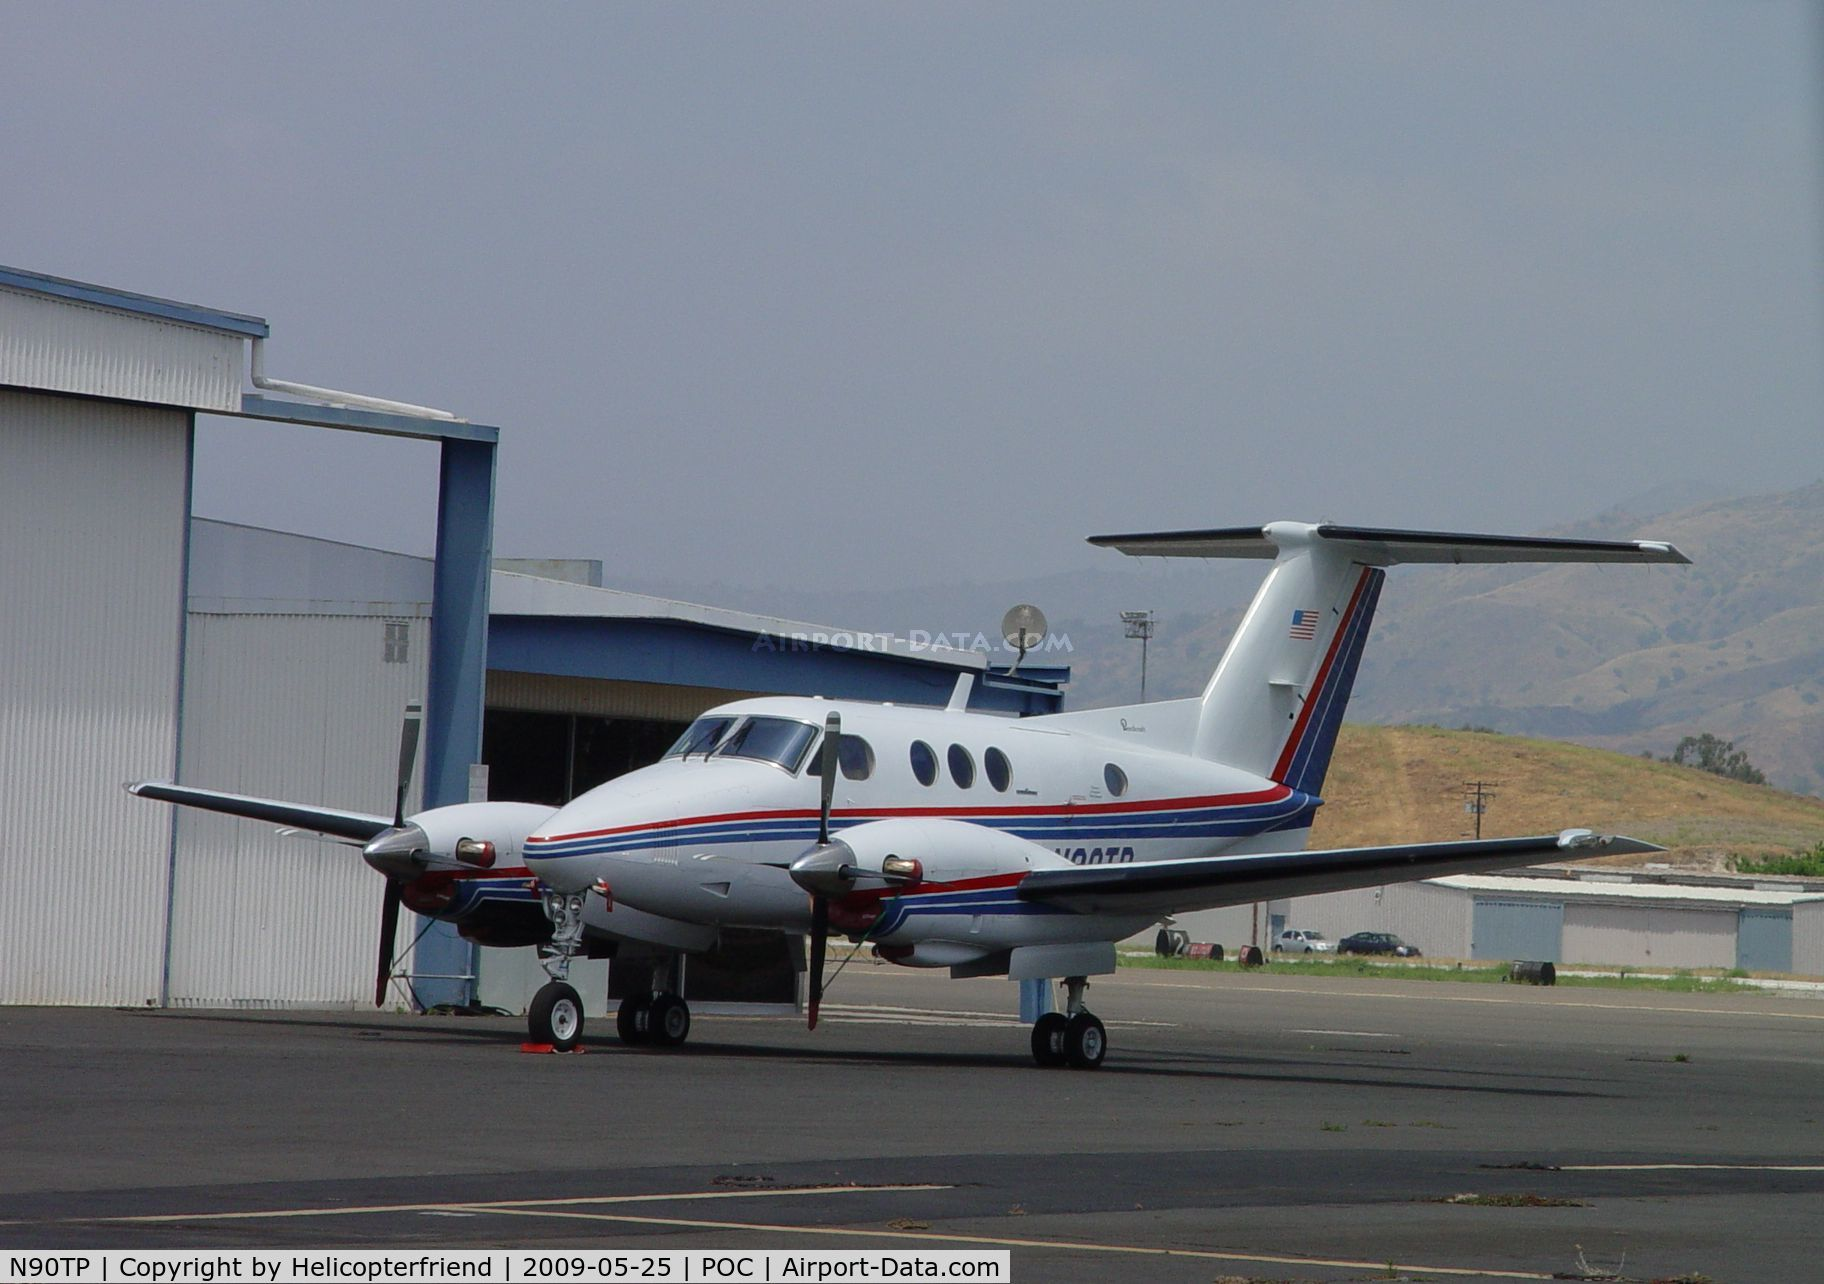 N90TP, 1980 Beech F90 King Air C/N LA-66, Parked waiting to be looked at